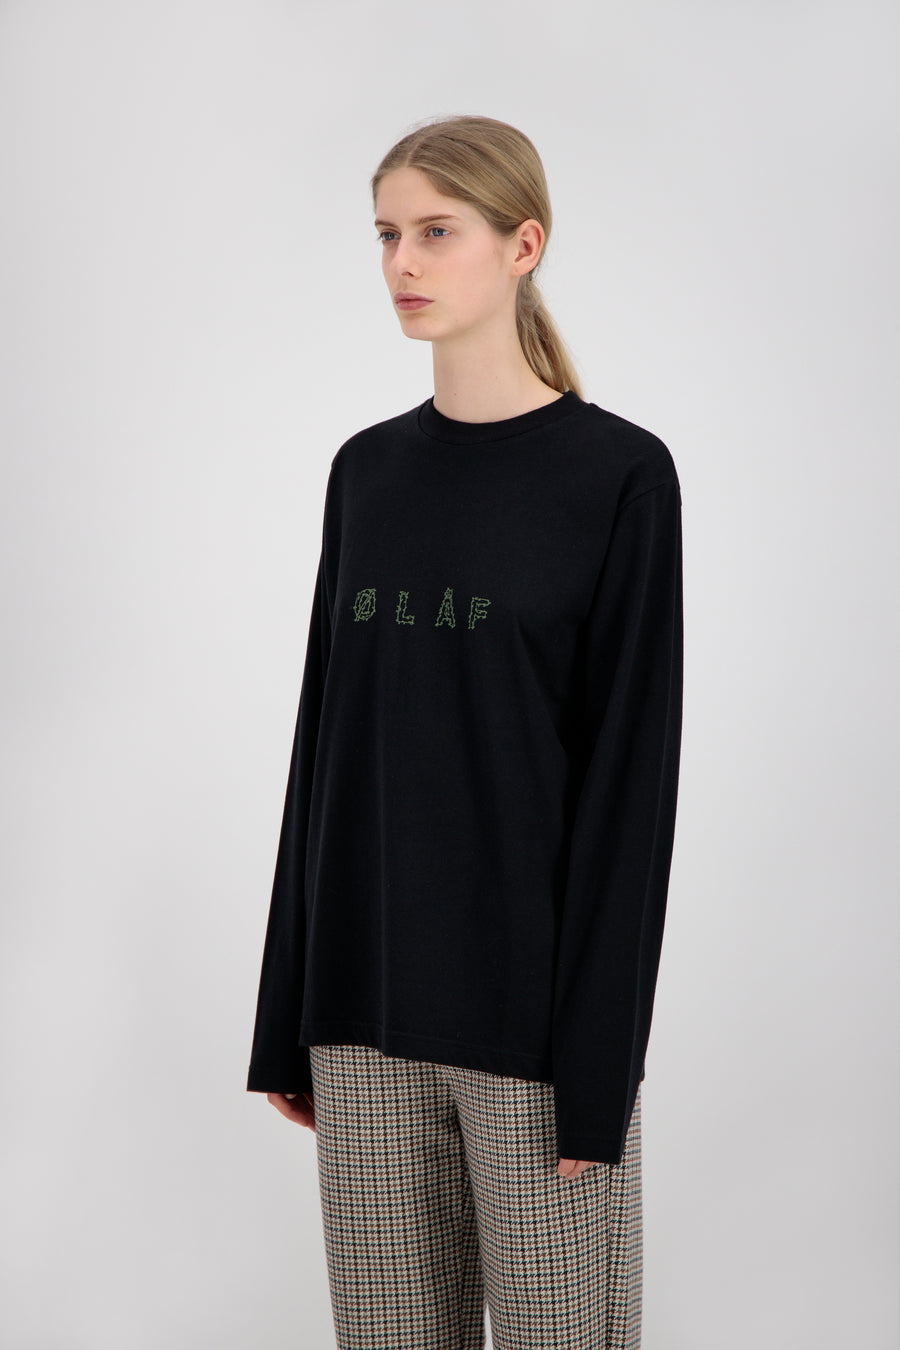 ØLÅF Stems LS Tee <br>Black